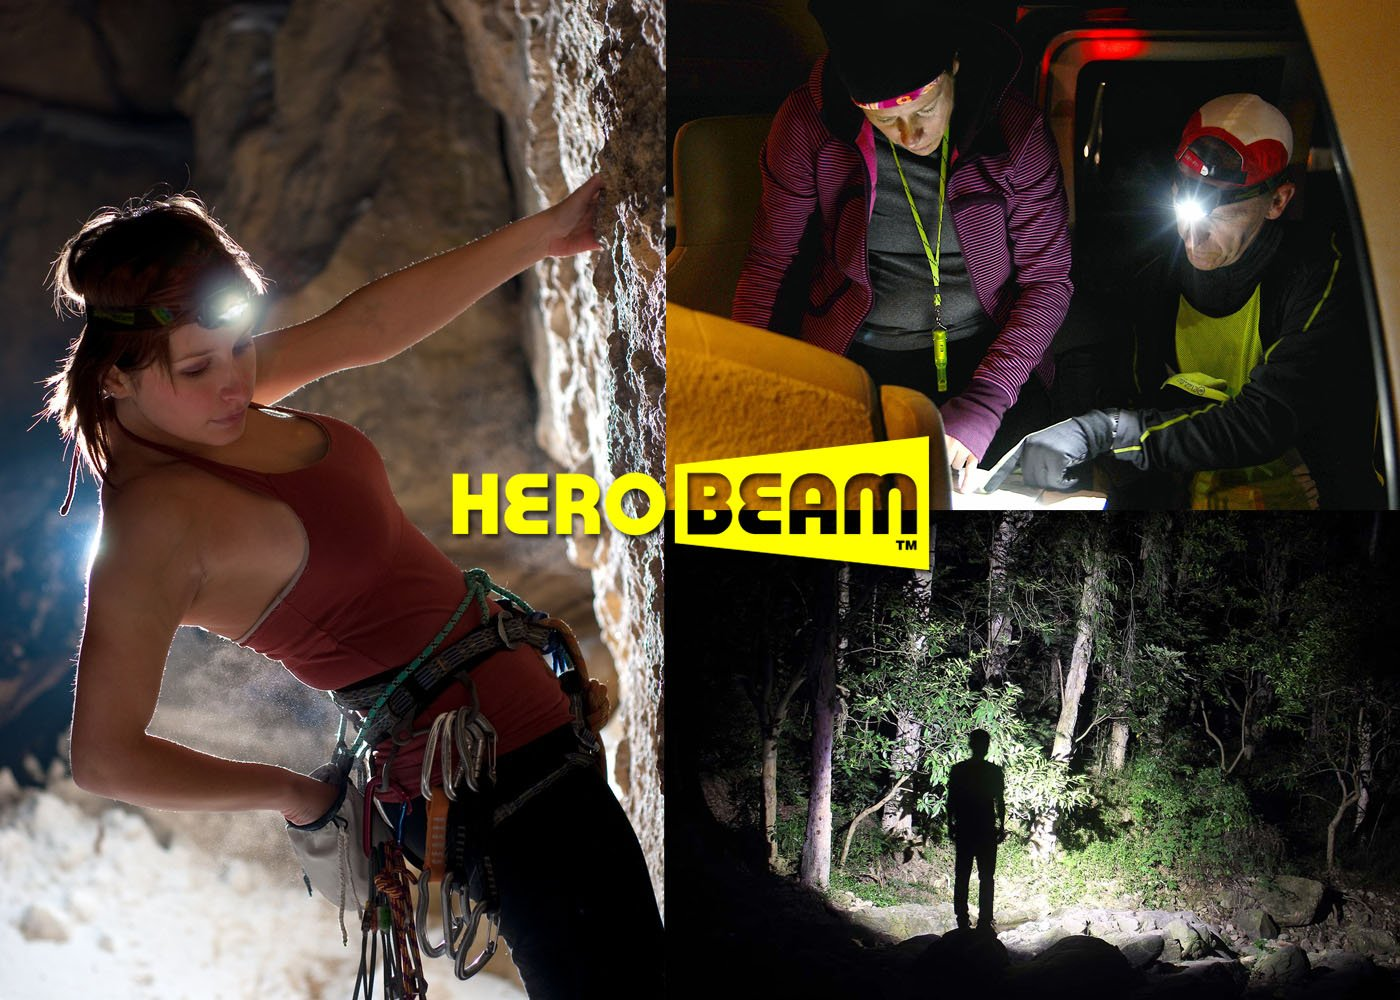 HeroBeam® Ultimate Head Torch – USB Rechargeable Headlamp for Running, Dog Walking, Biking, Camping, Reading, Homecrafts, Cycling or DIY – Hands Free ON/OFF Mode - Lightweight and Weatherproof 3